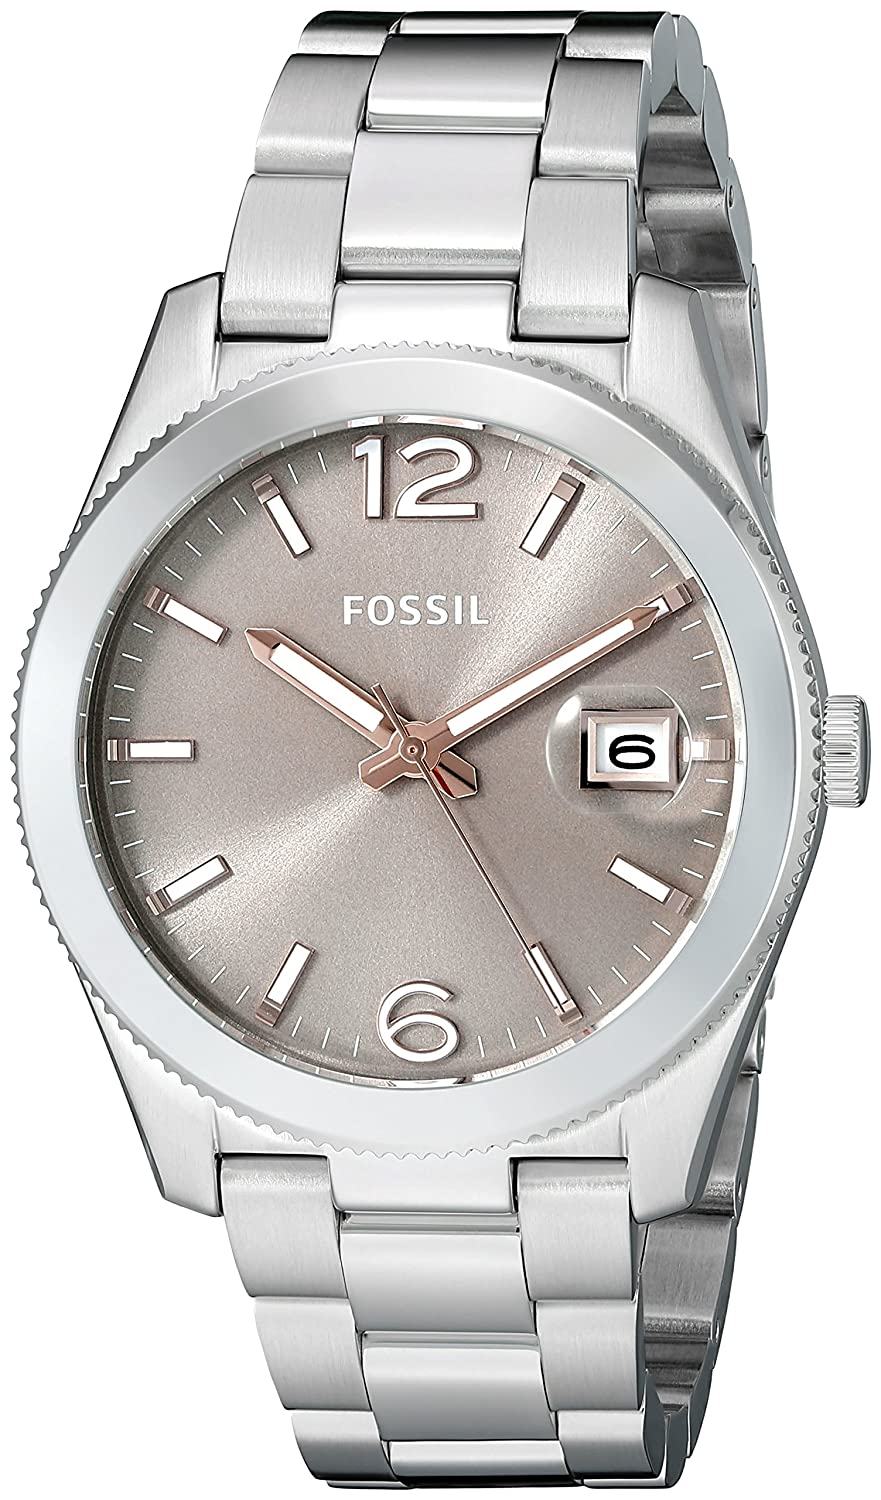 Amazon.com: Fossil Womens ES3828 Perfect Boyfriend Stainless Steel Watch: Fossil: Watches